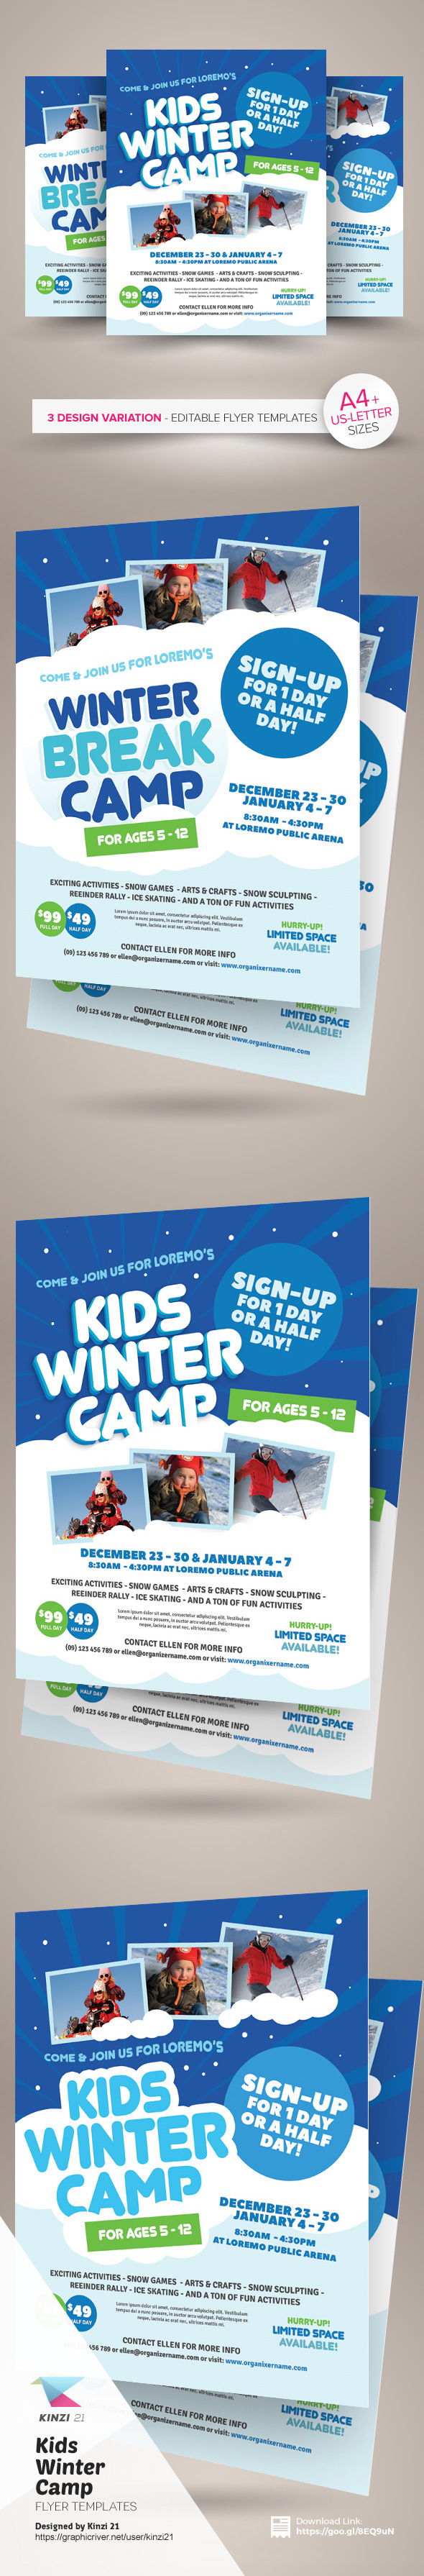 kids winter camp flyer templates on behance kids winter camp flyer templates are fully editable design templates created for on graphic river more info of the templates and how to get the